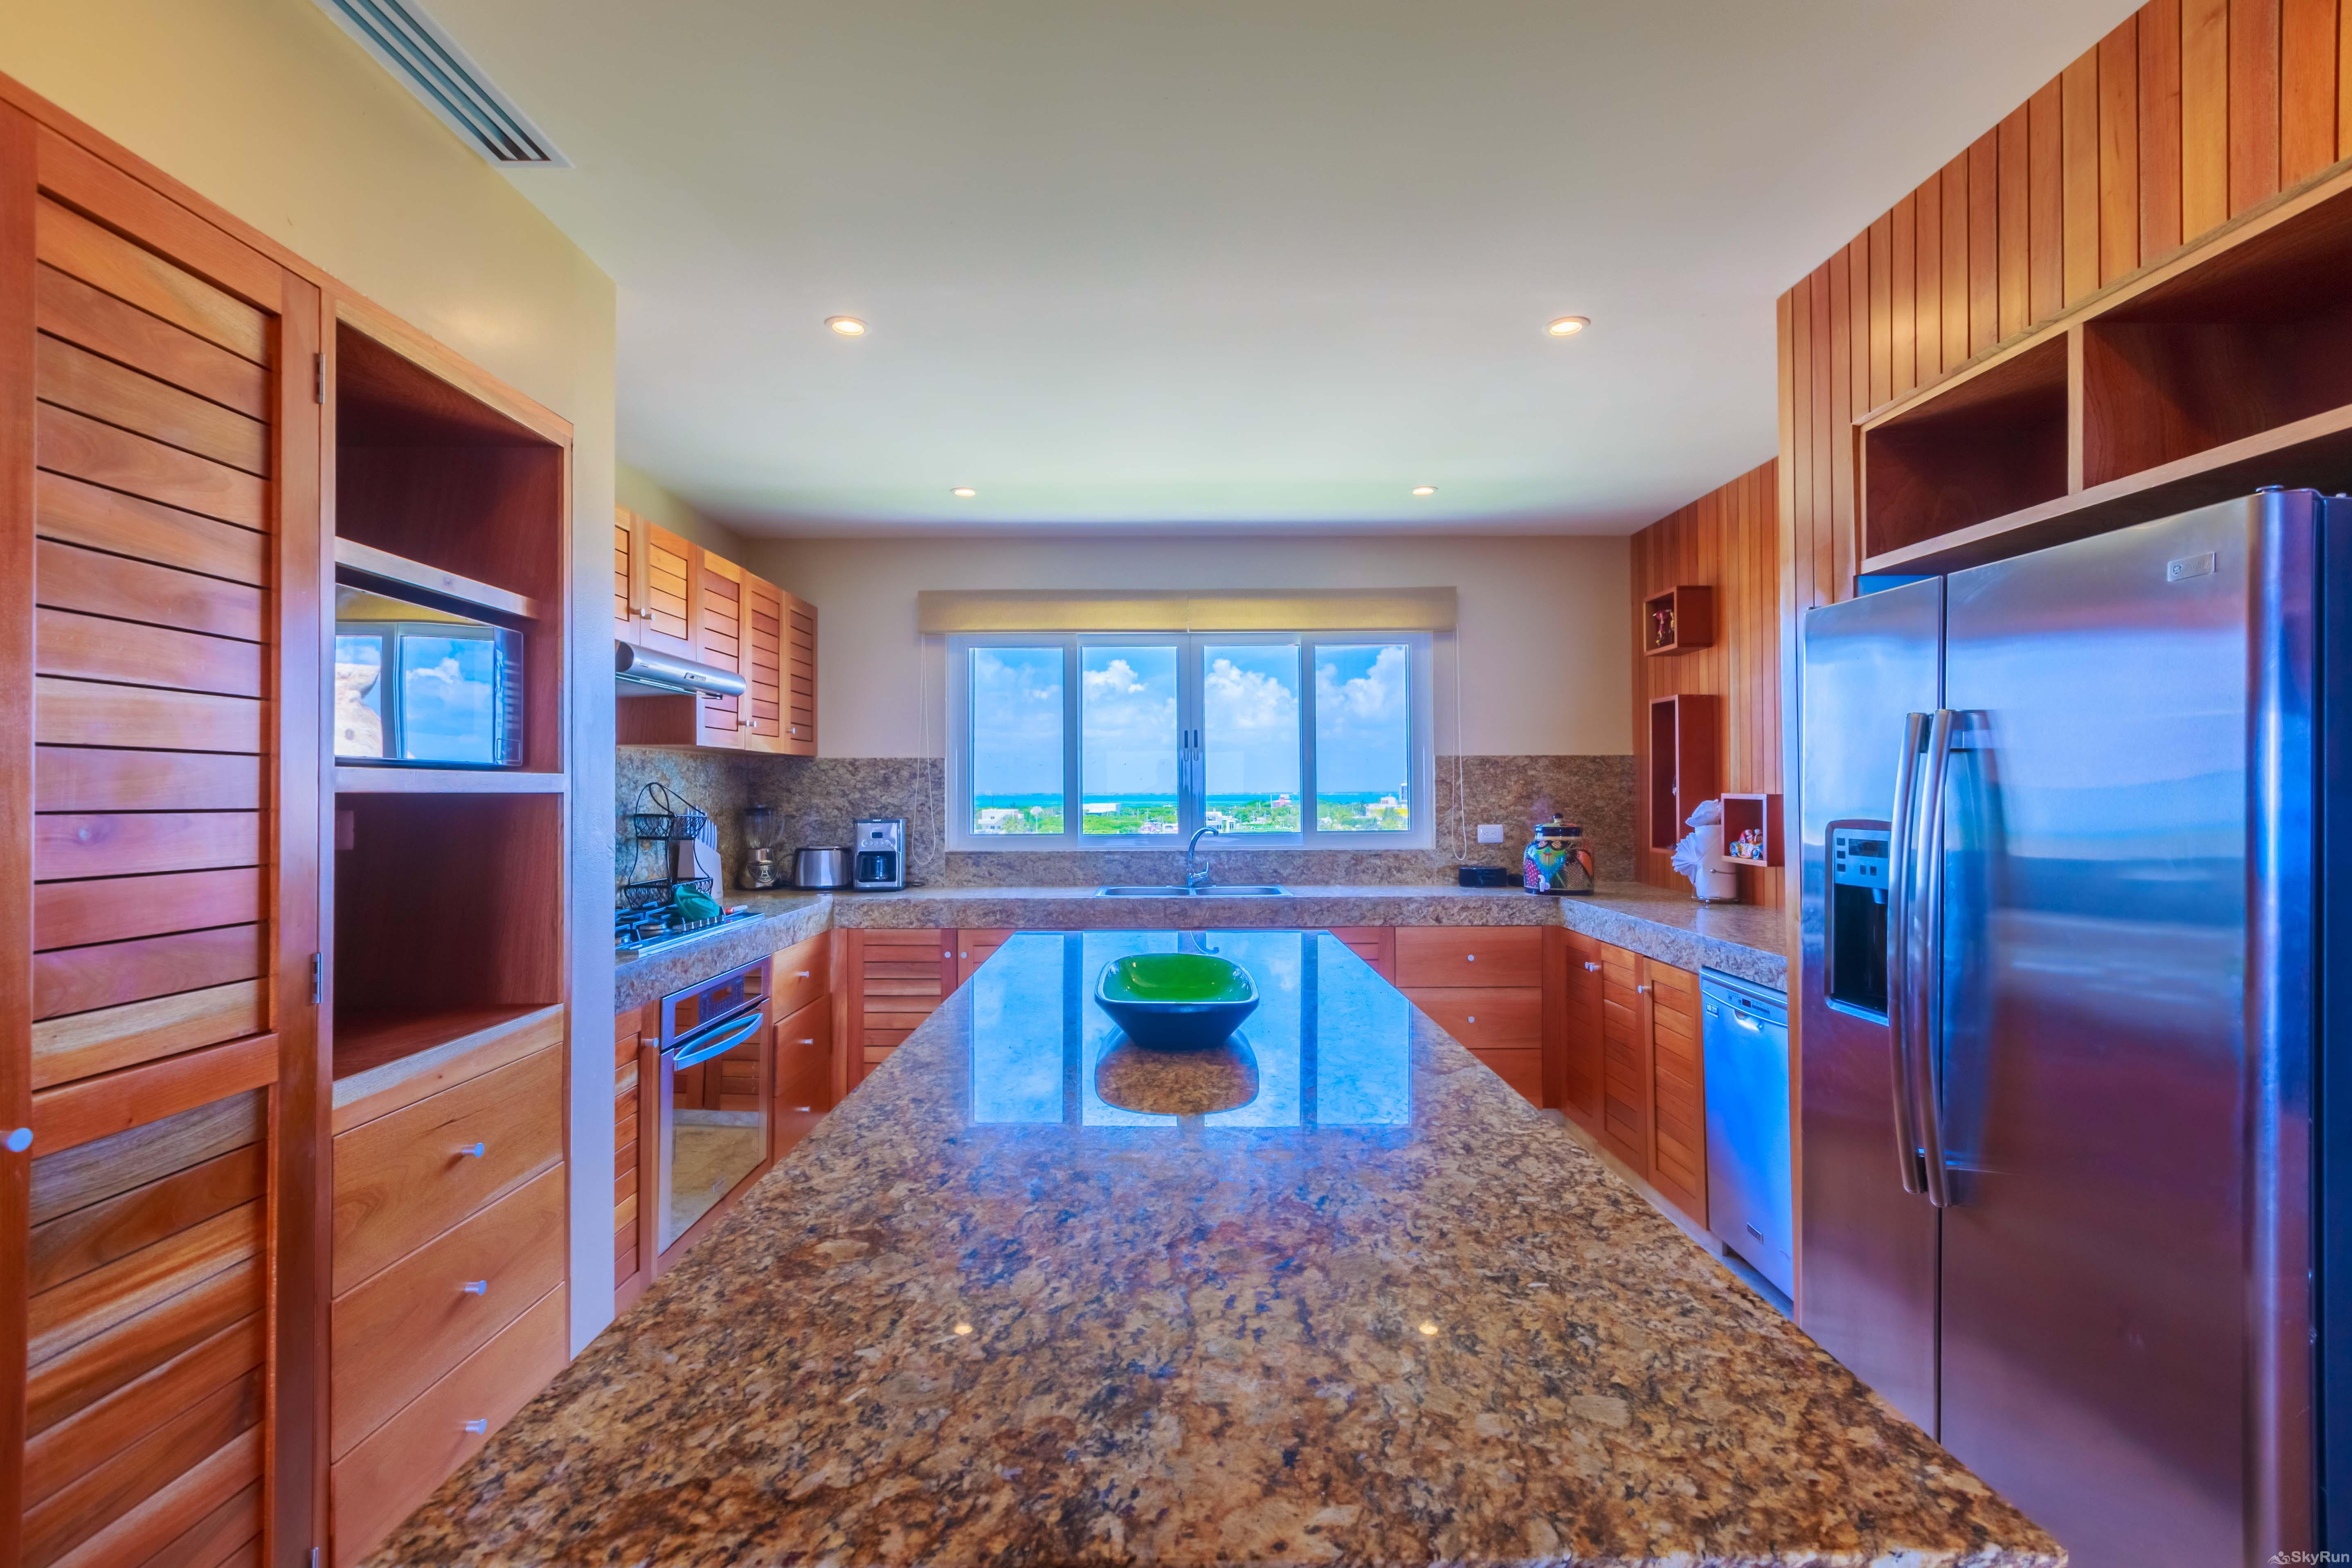 New Luxury Villa Isla 33 Spacious and marble countertops full equipped kitchen